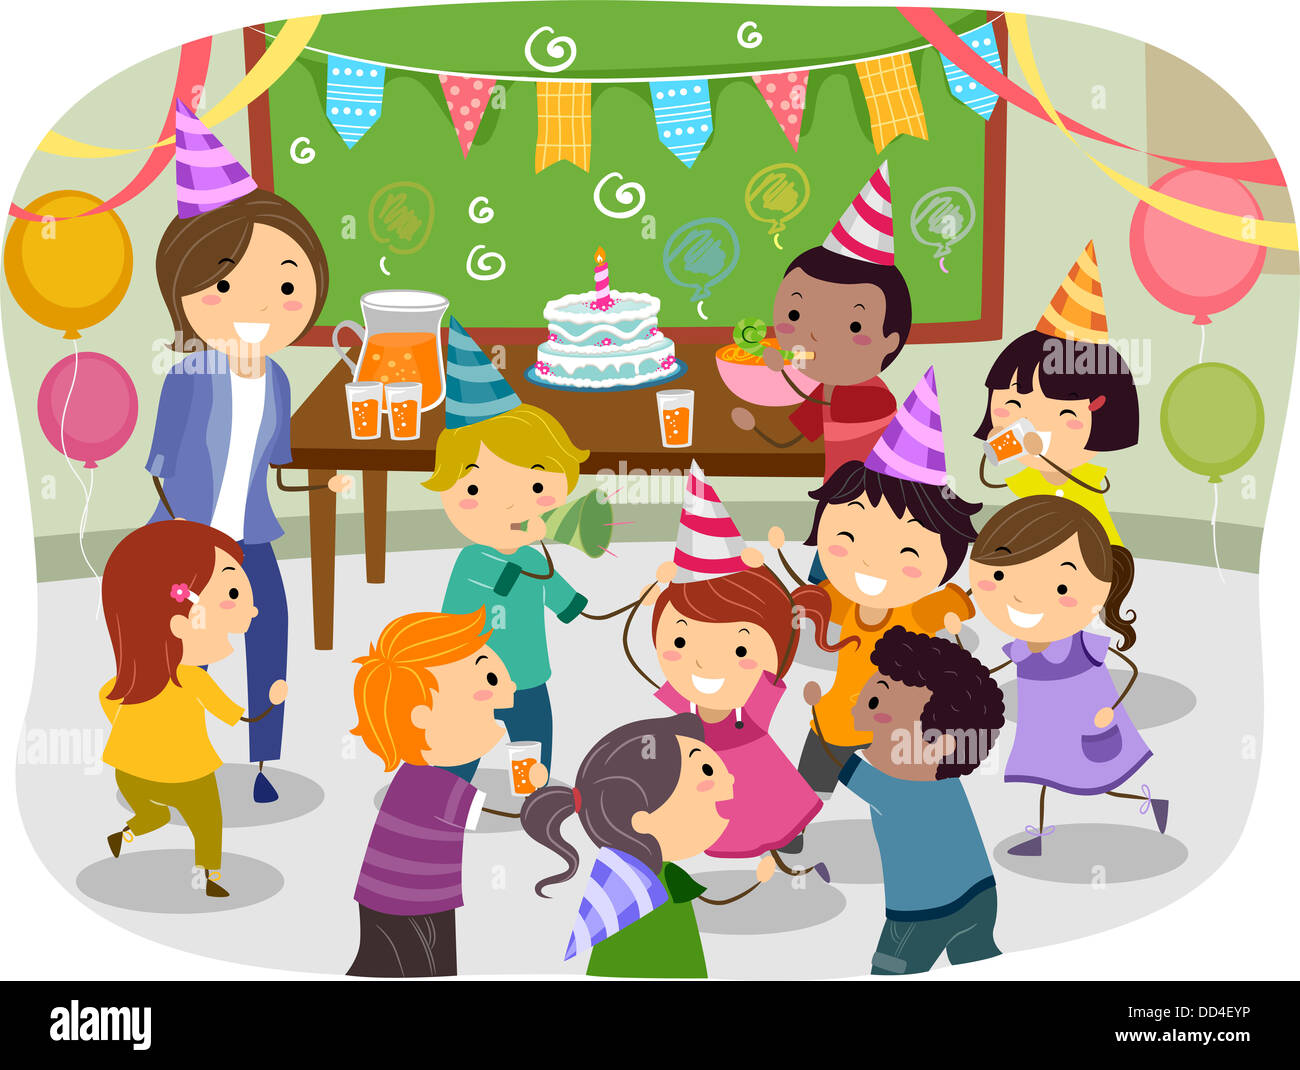 Illustration Of Stickman Kids Having A Birthday Party At School